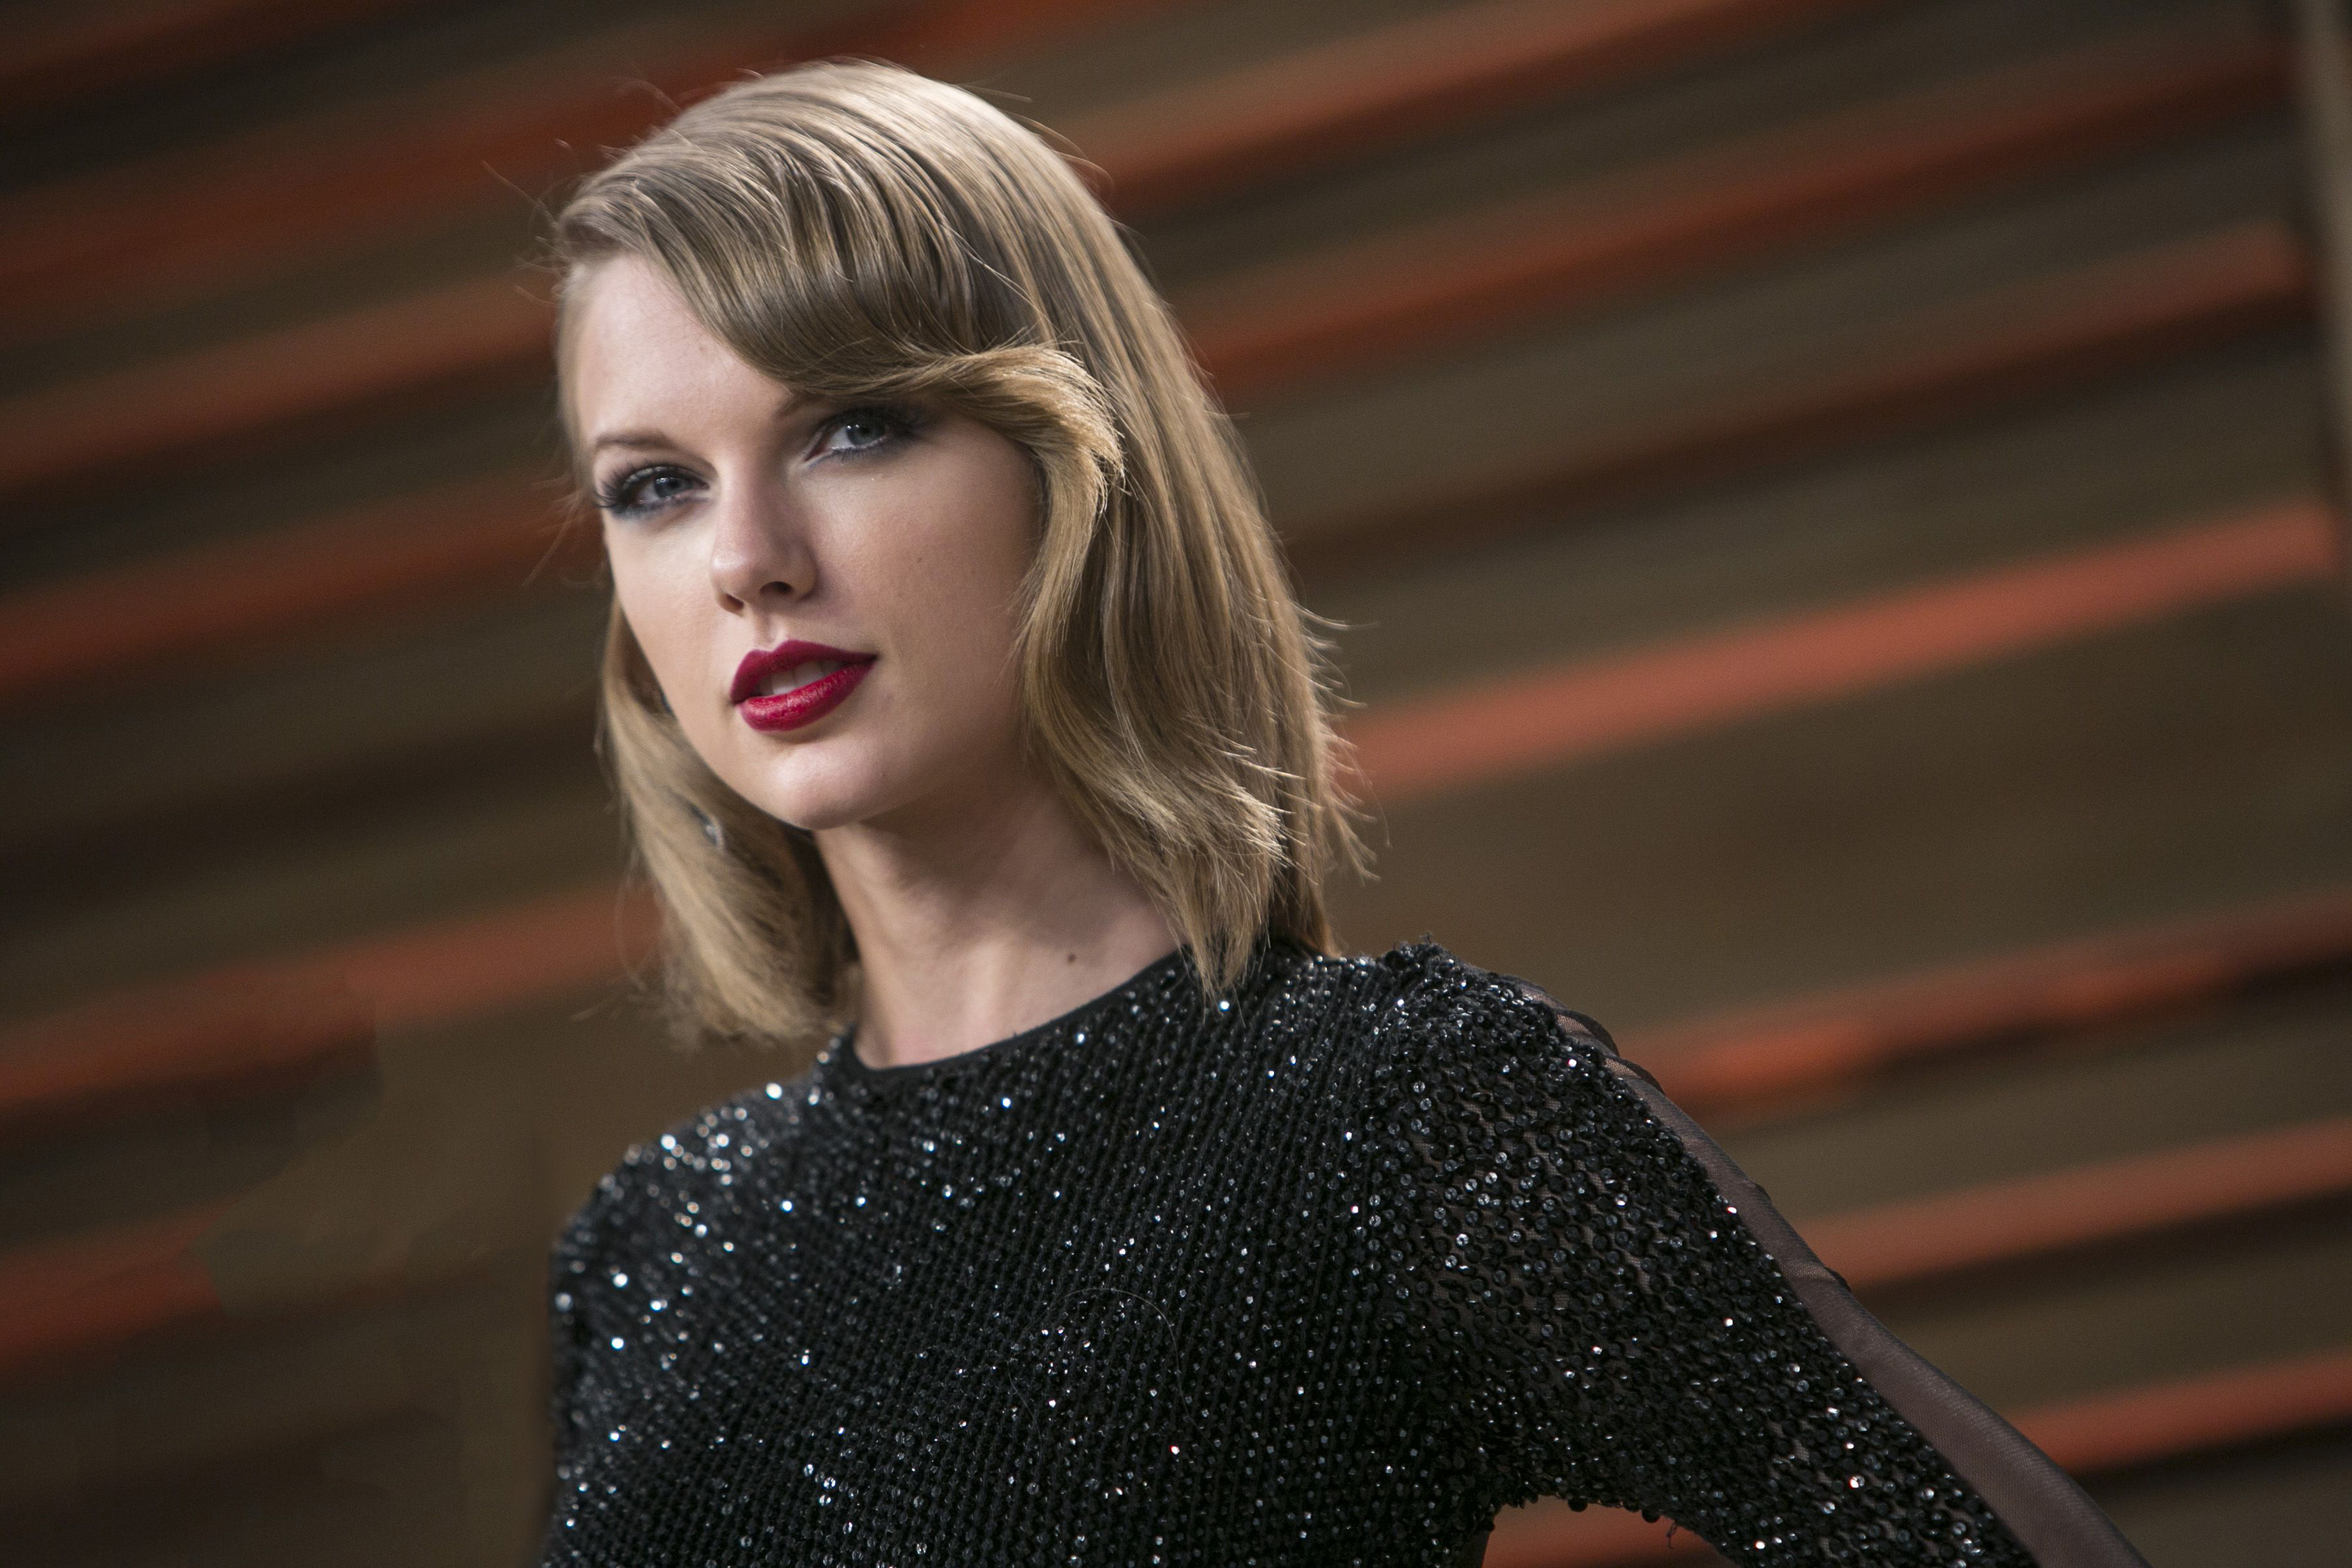 Taylor Swift 2018, HD Celebrities, 4k Wallpapers, Images, Backgrounds, Photos and Pictures